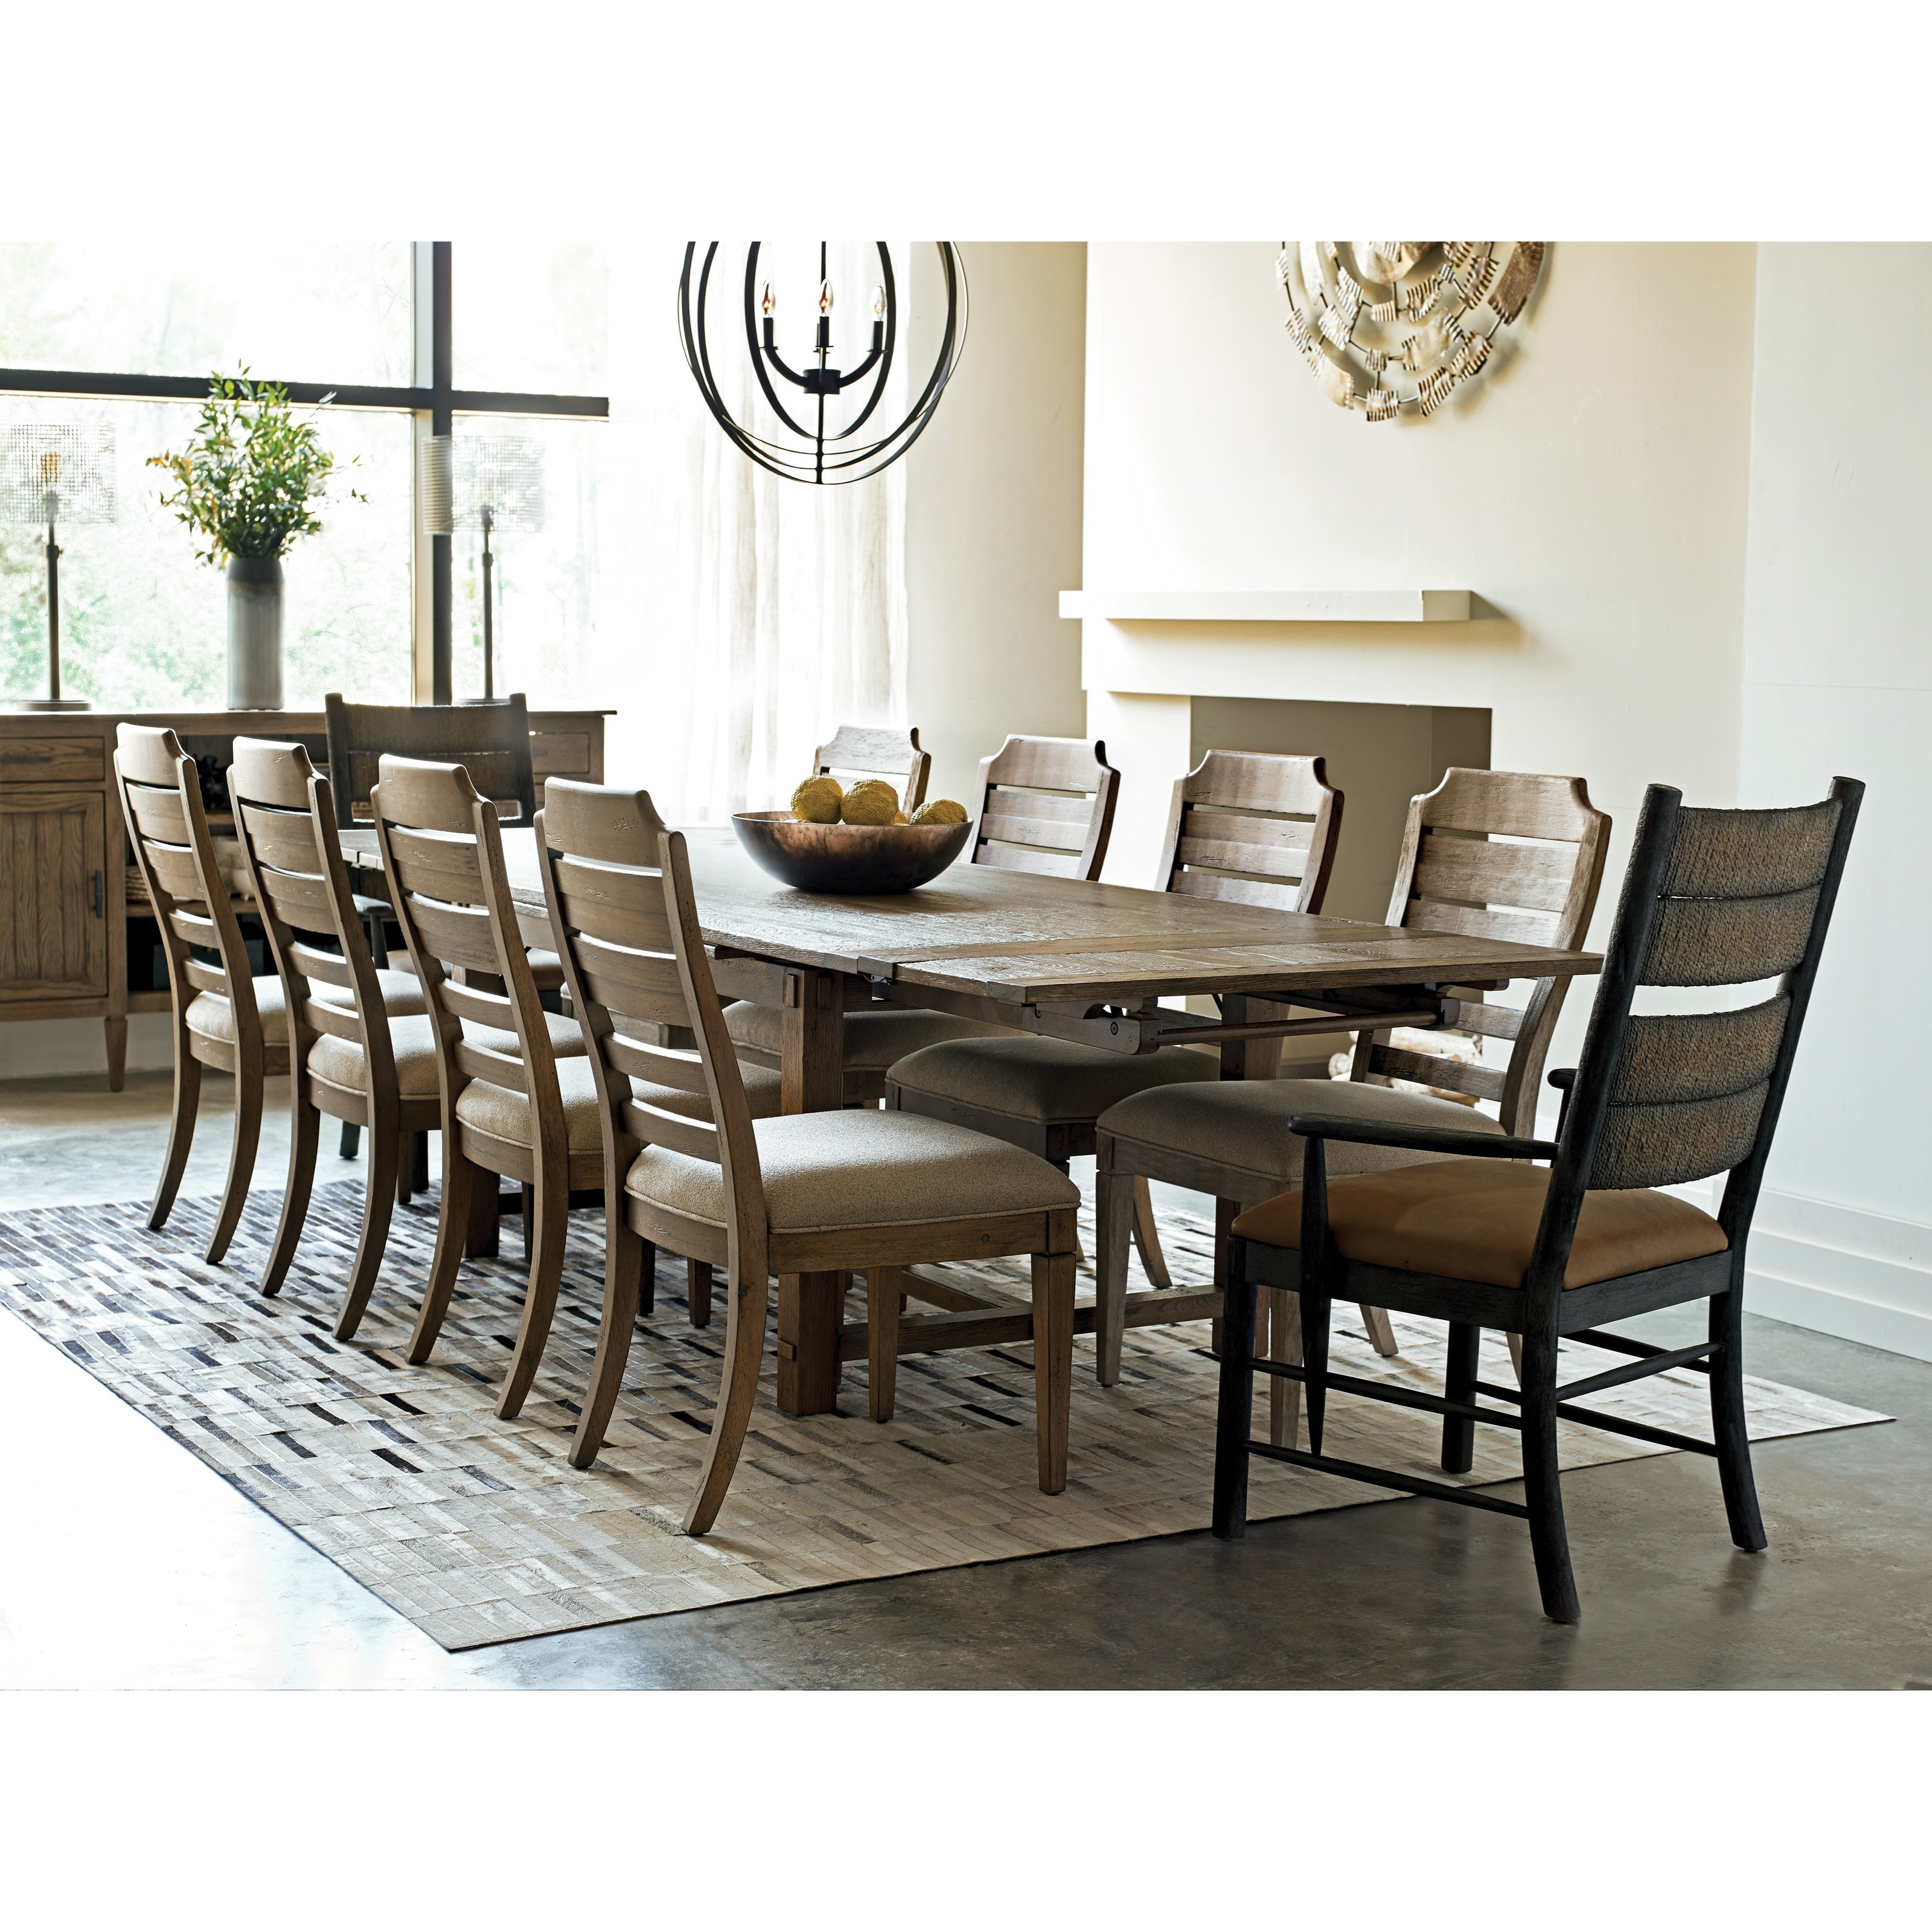 Kincaid Dining Room Set: Kincaid Furniture Trails Relaxed Vintage Eleven Piece Dining Set